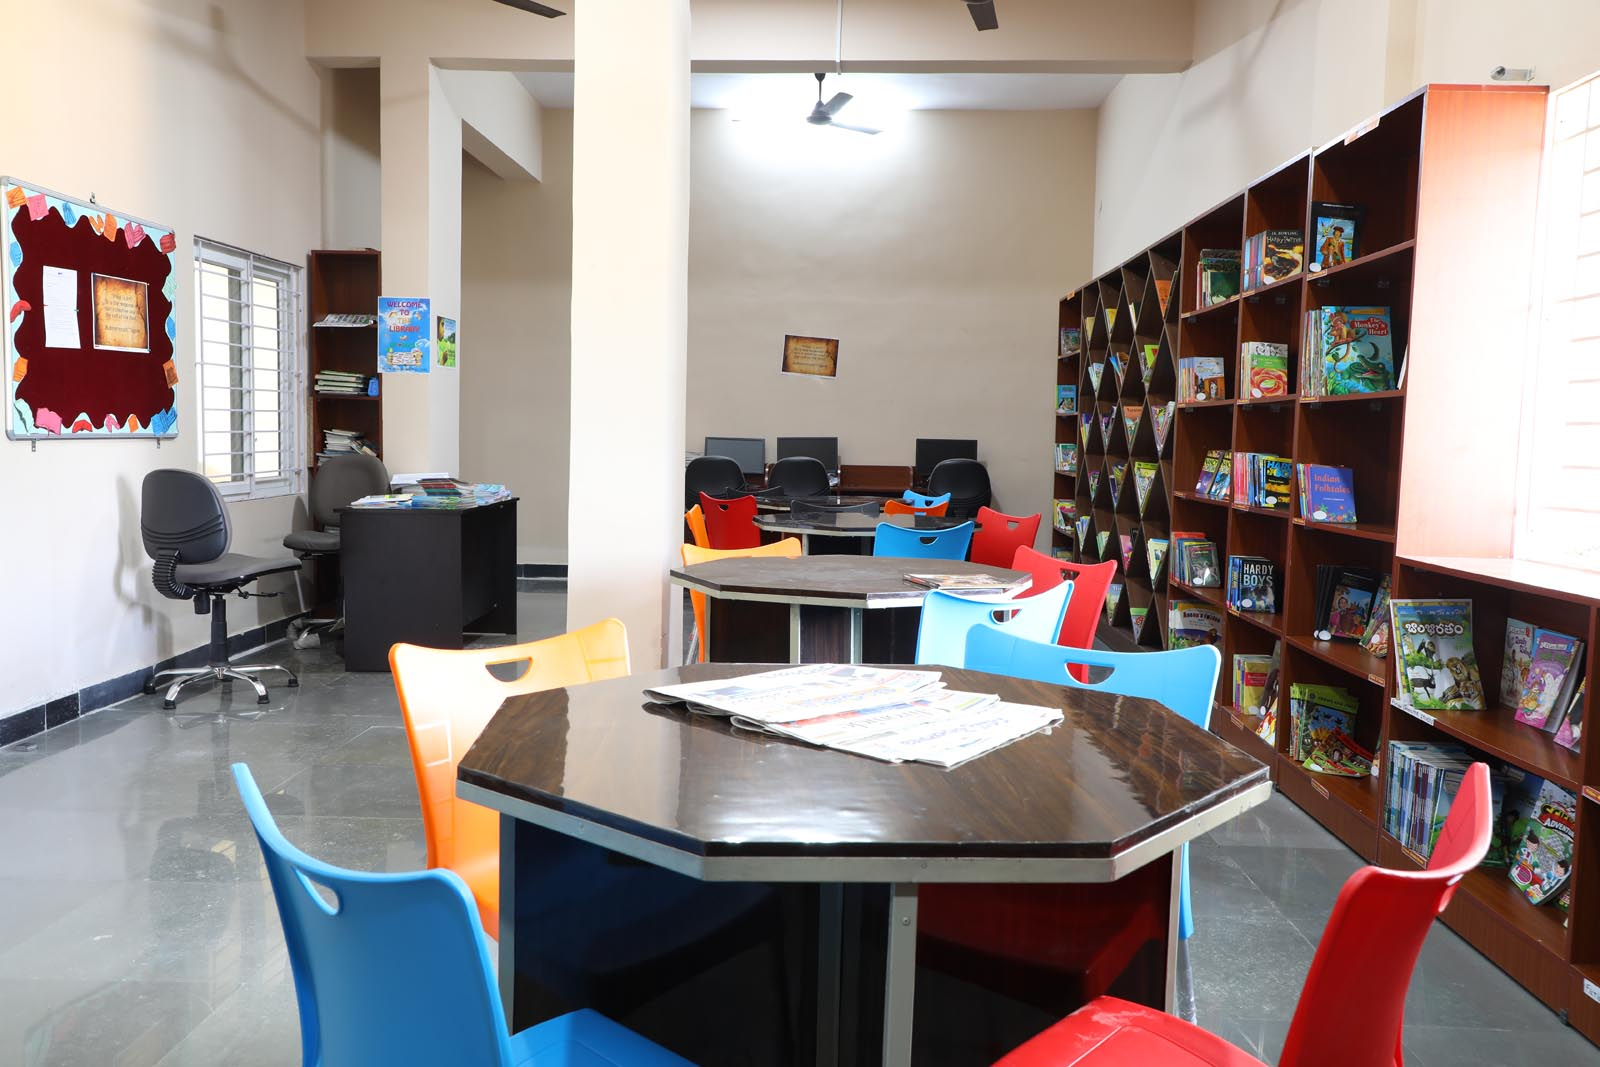 Igcse Schools In Hyderabad 2020 Fee Structure Location Facilities And More